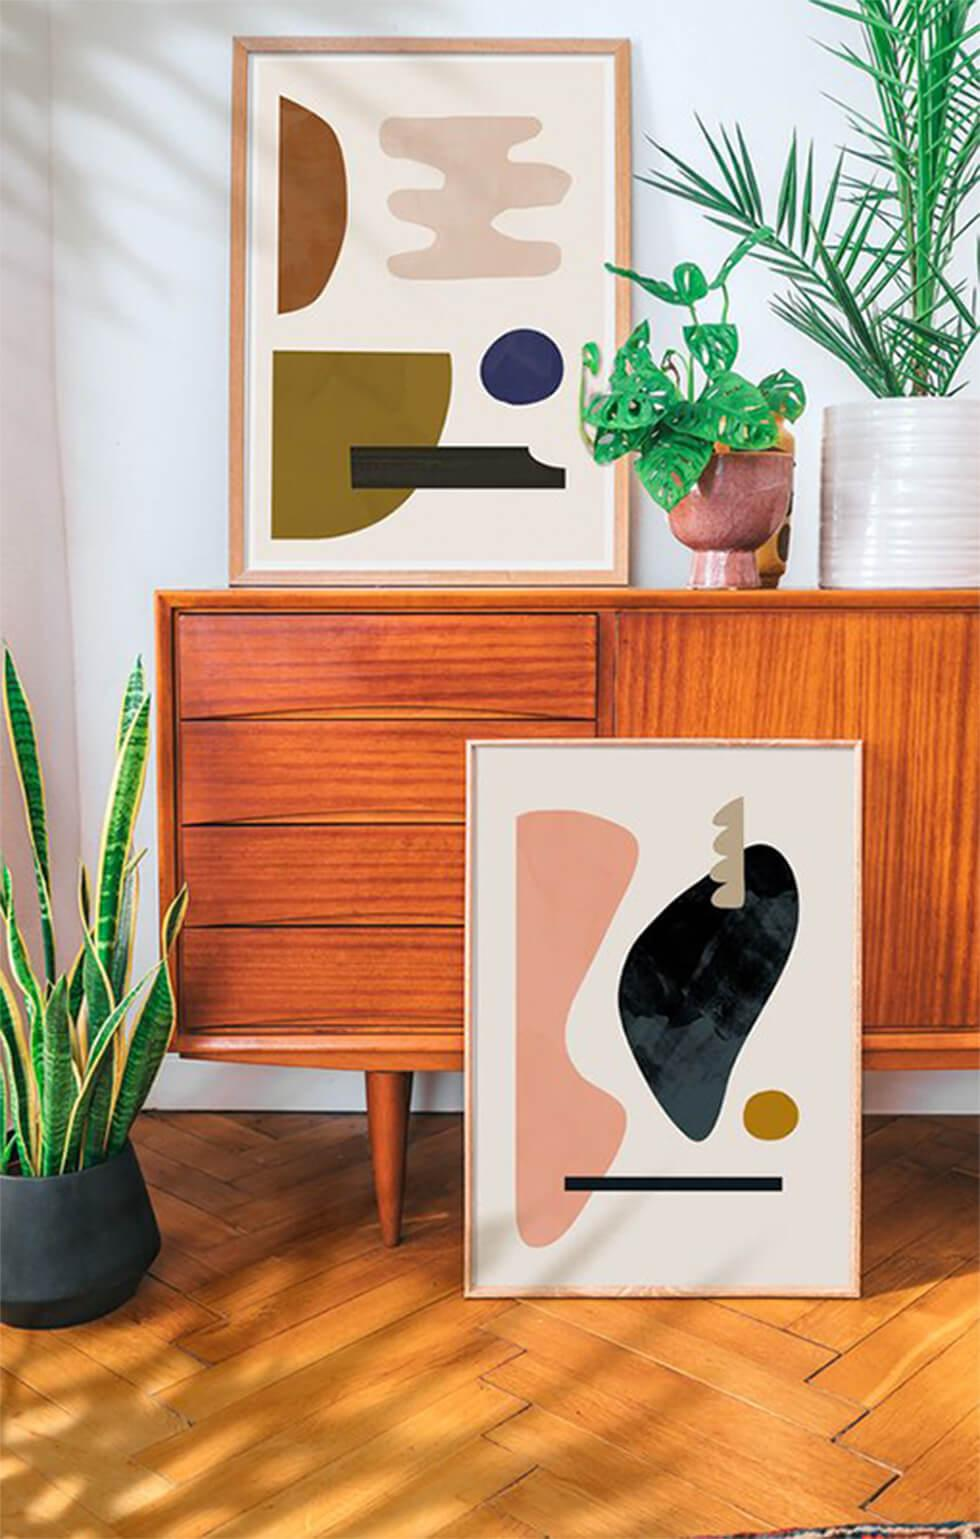 Framed mid-century art against a credenza with indoor plants